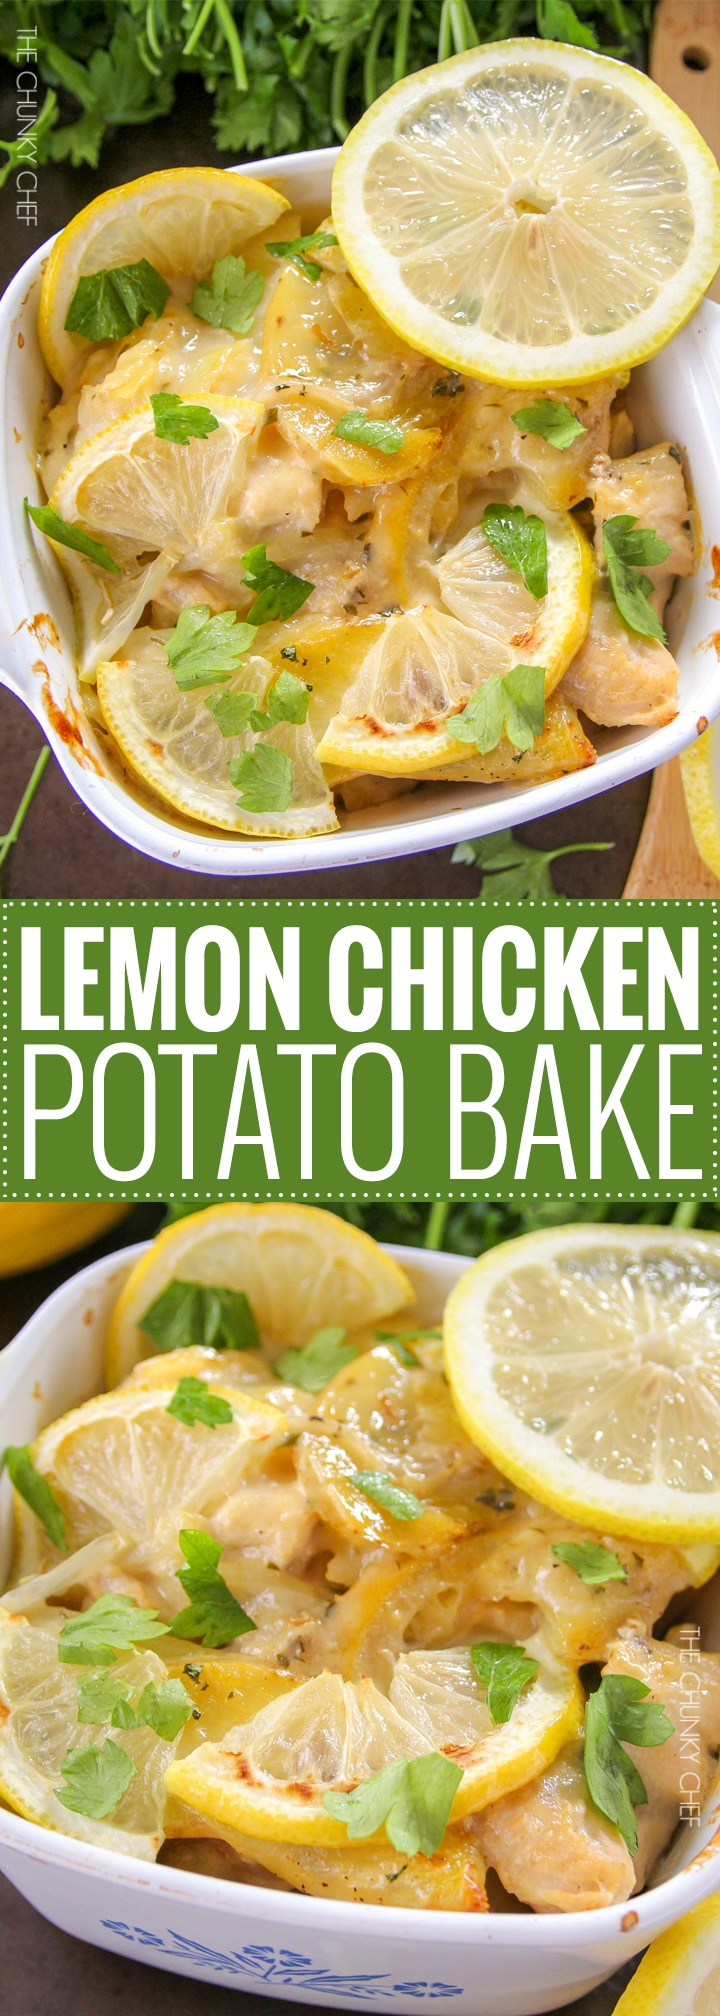 Lemon Chicken and Potato Bake | Chicken and potatoes are baked with lemon slices in a creamy casserole that's sure to fill you up and make you smile! | http://thechunkychef.com